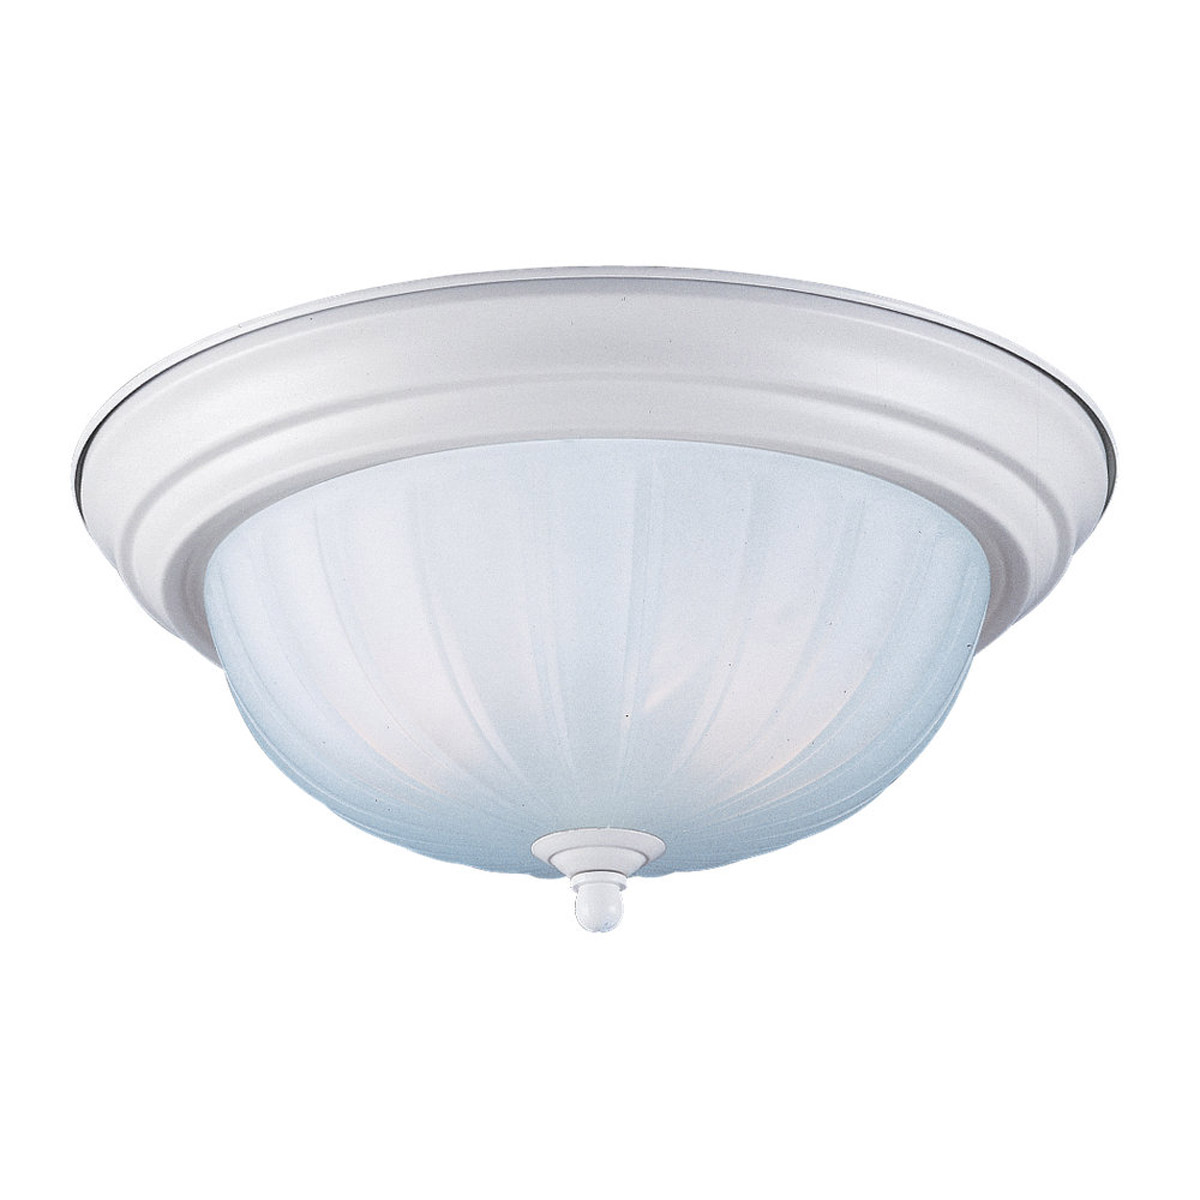 Sea Gull Lighting Floyd 3 Light Flush Mount in Textured Snow 79506BLE-162